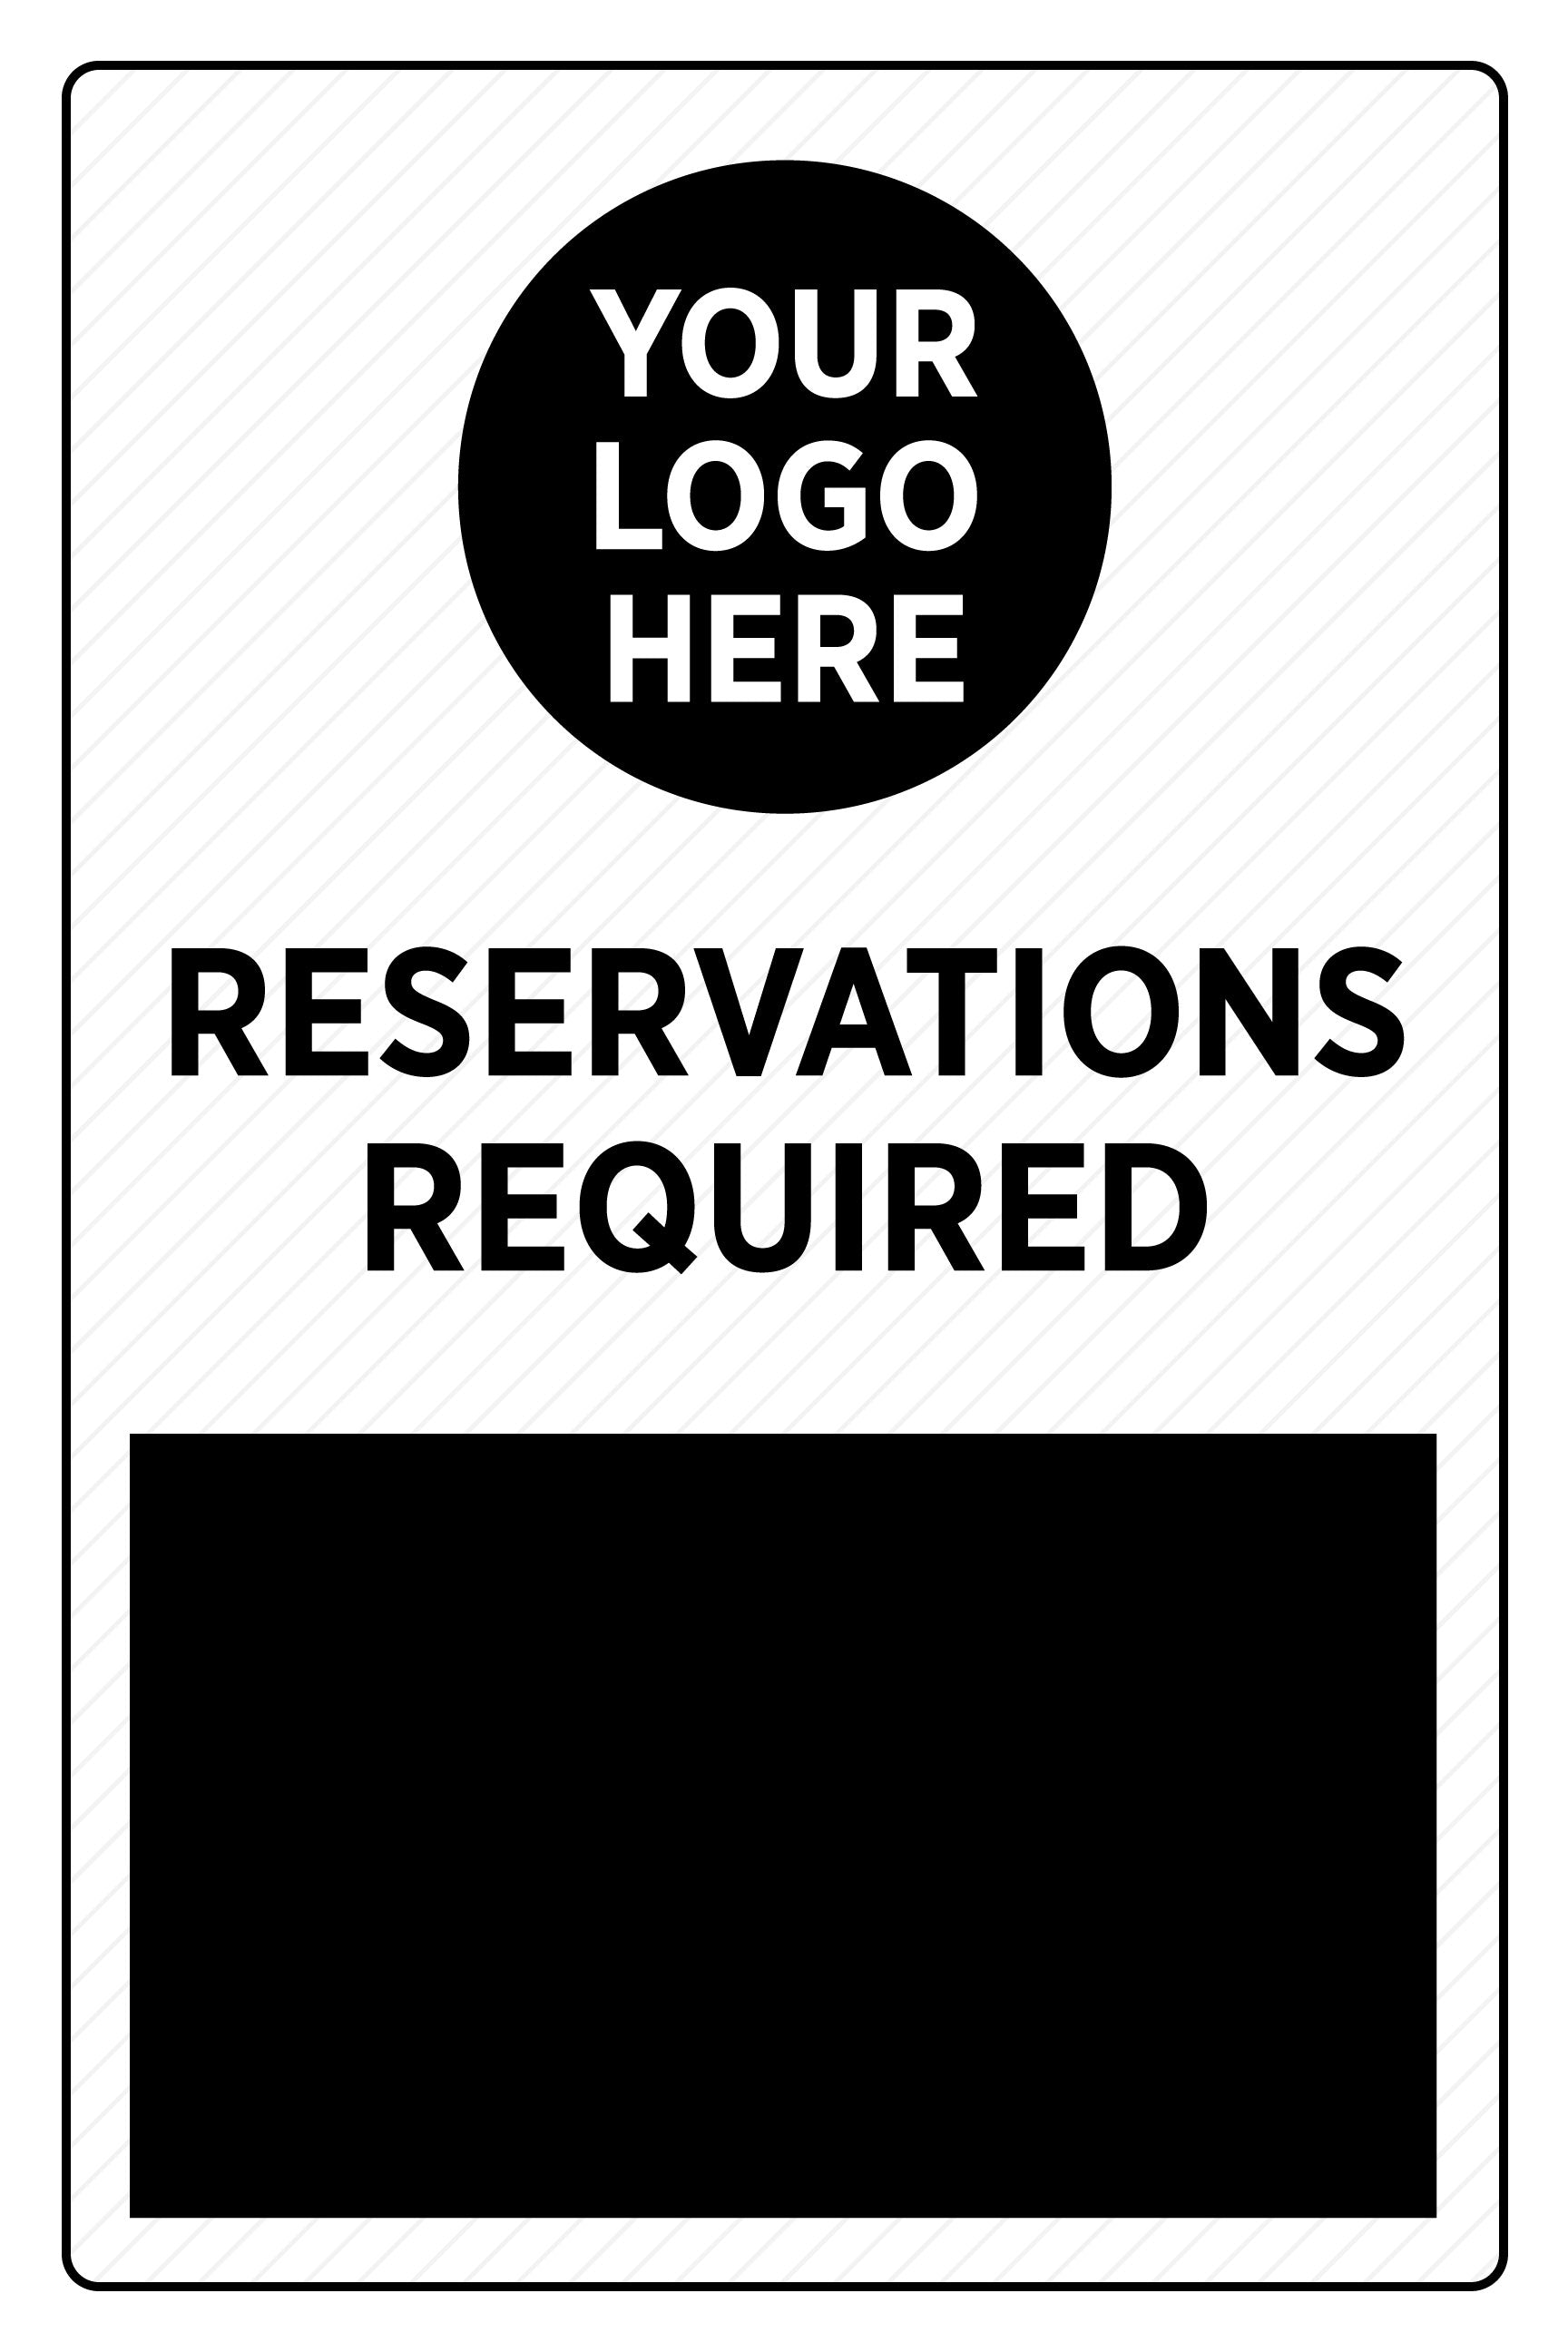 Reservations Required - Deluxe